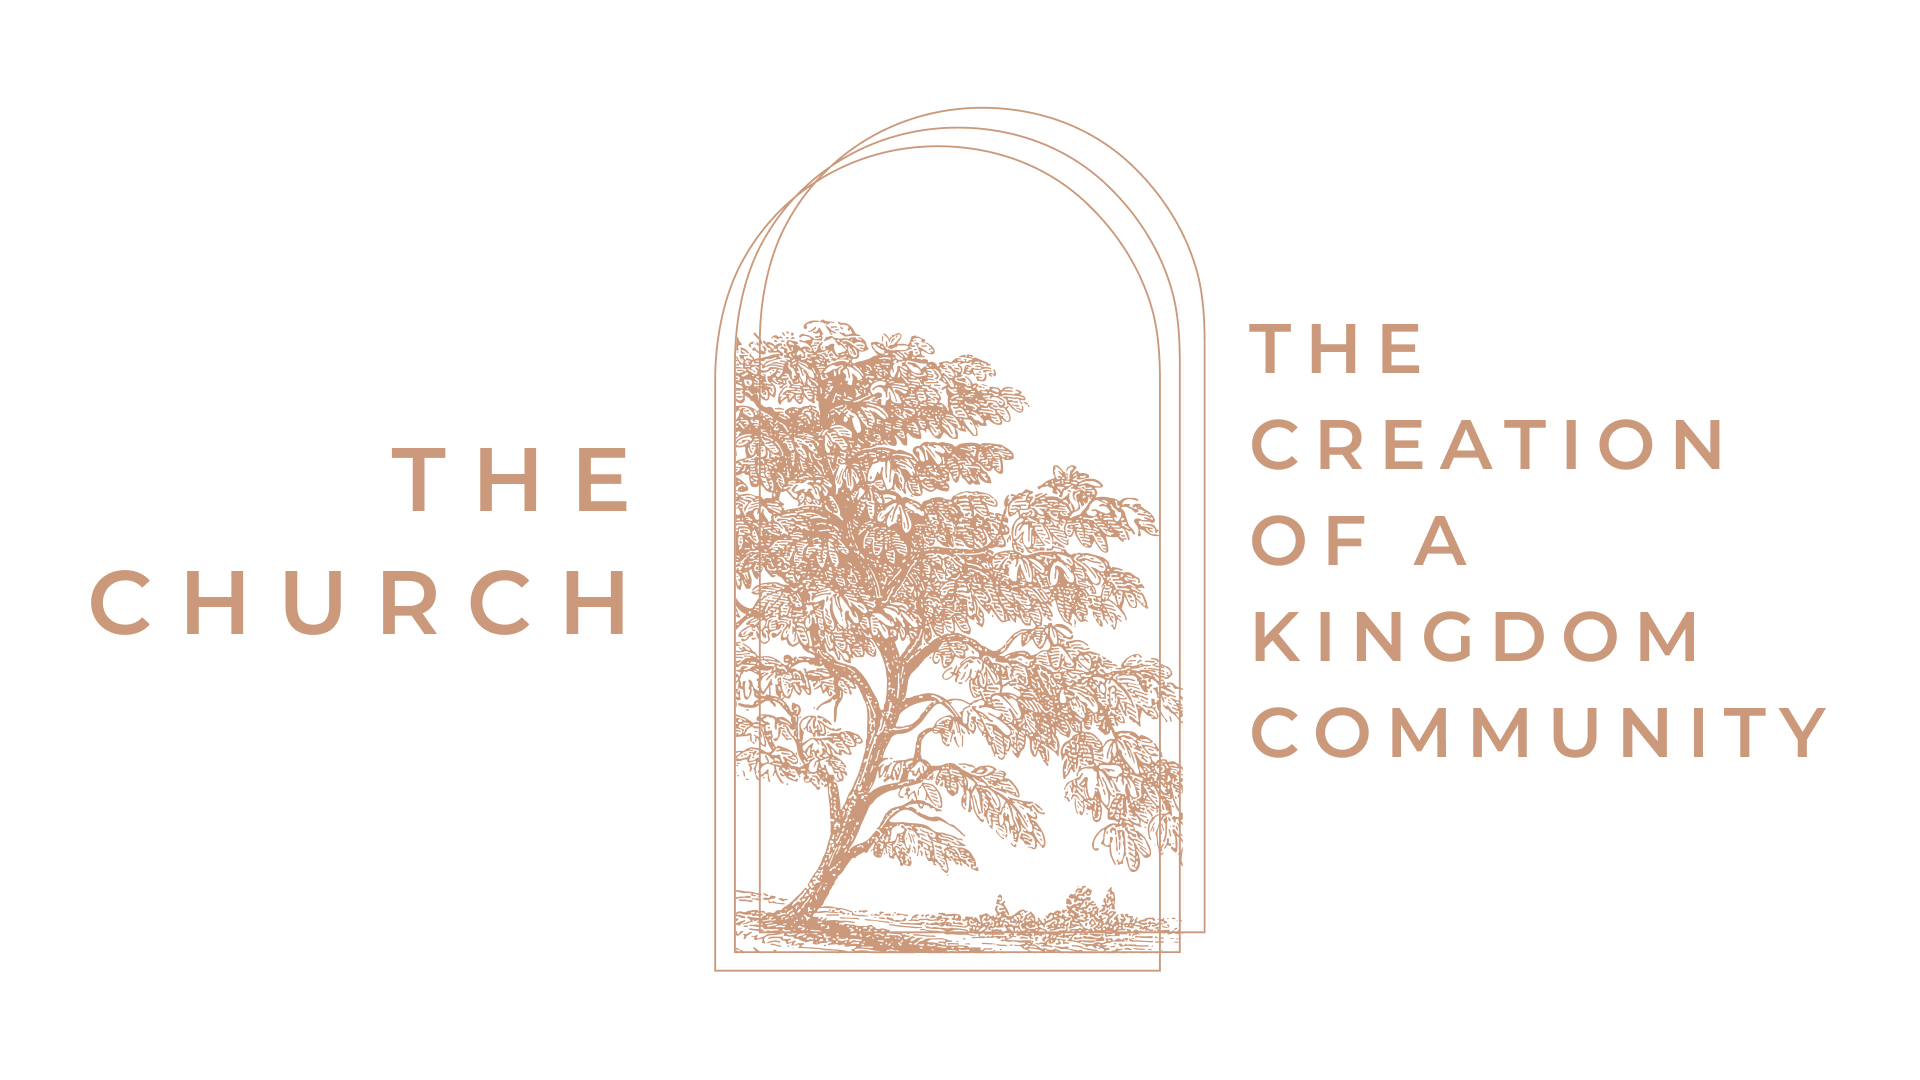 The Church: The Creation of a Kingdom Community